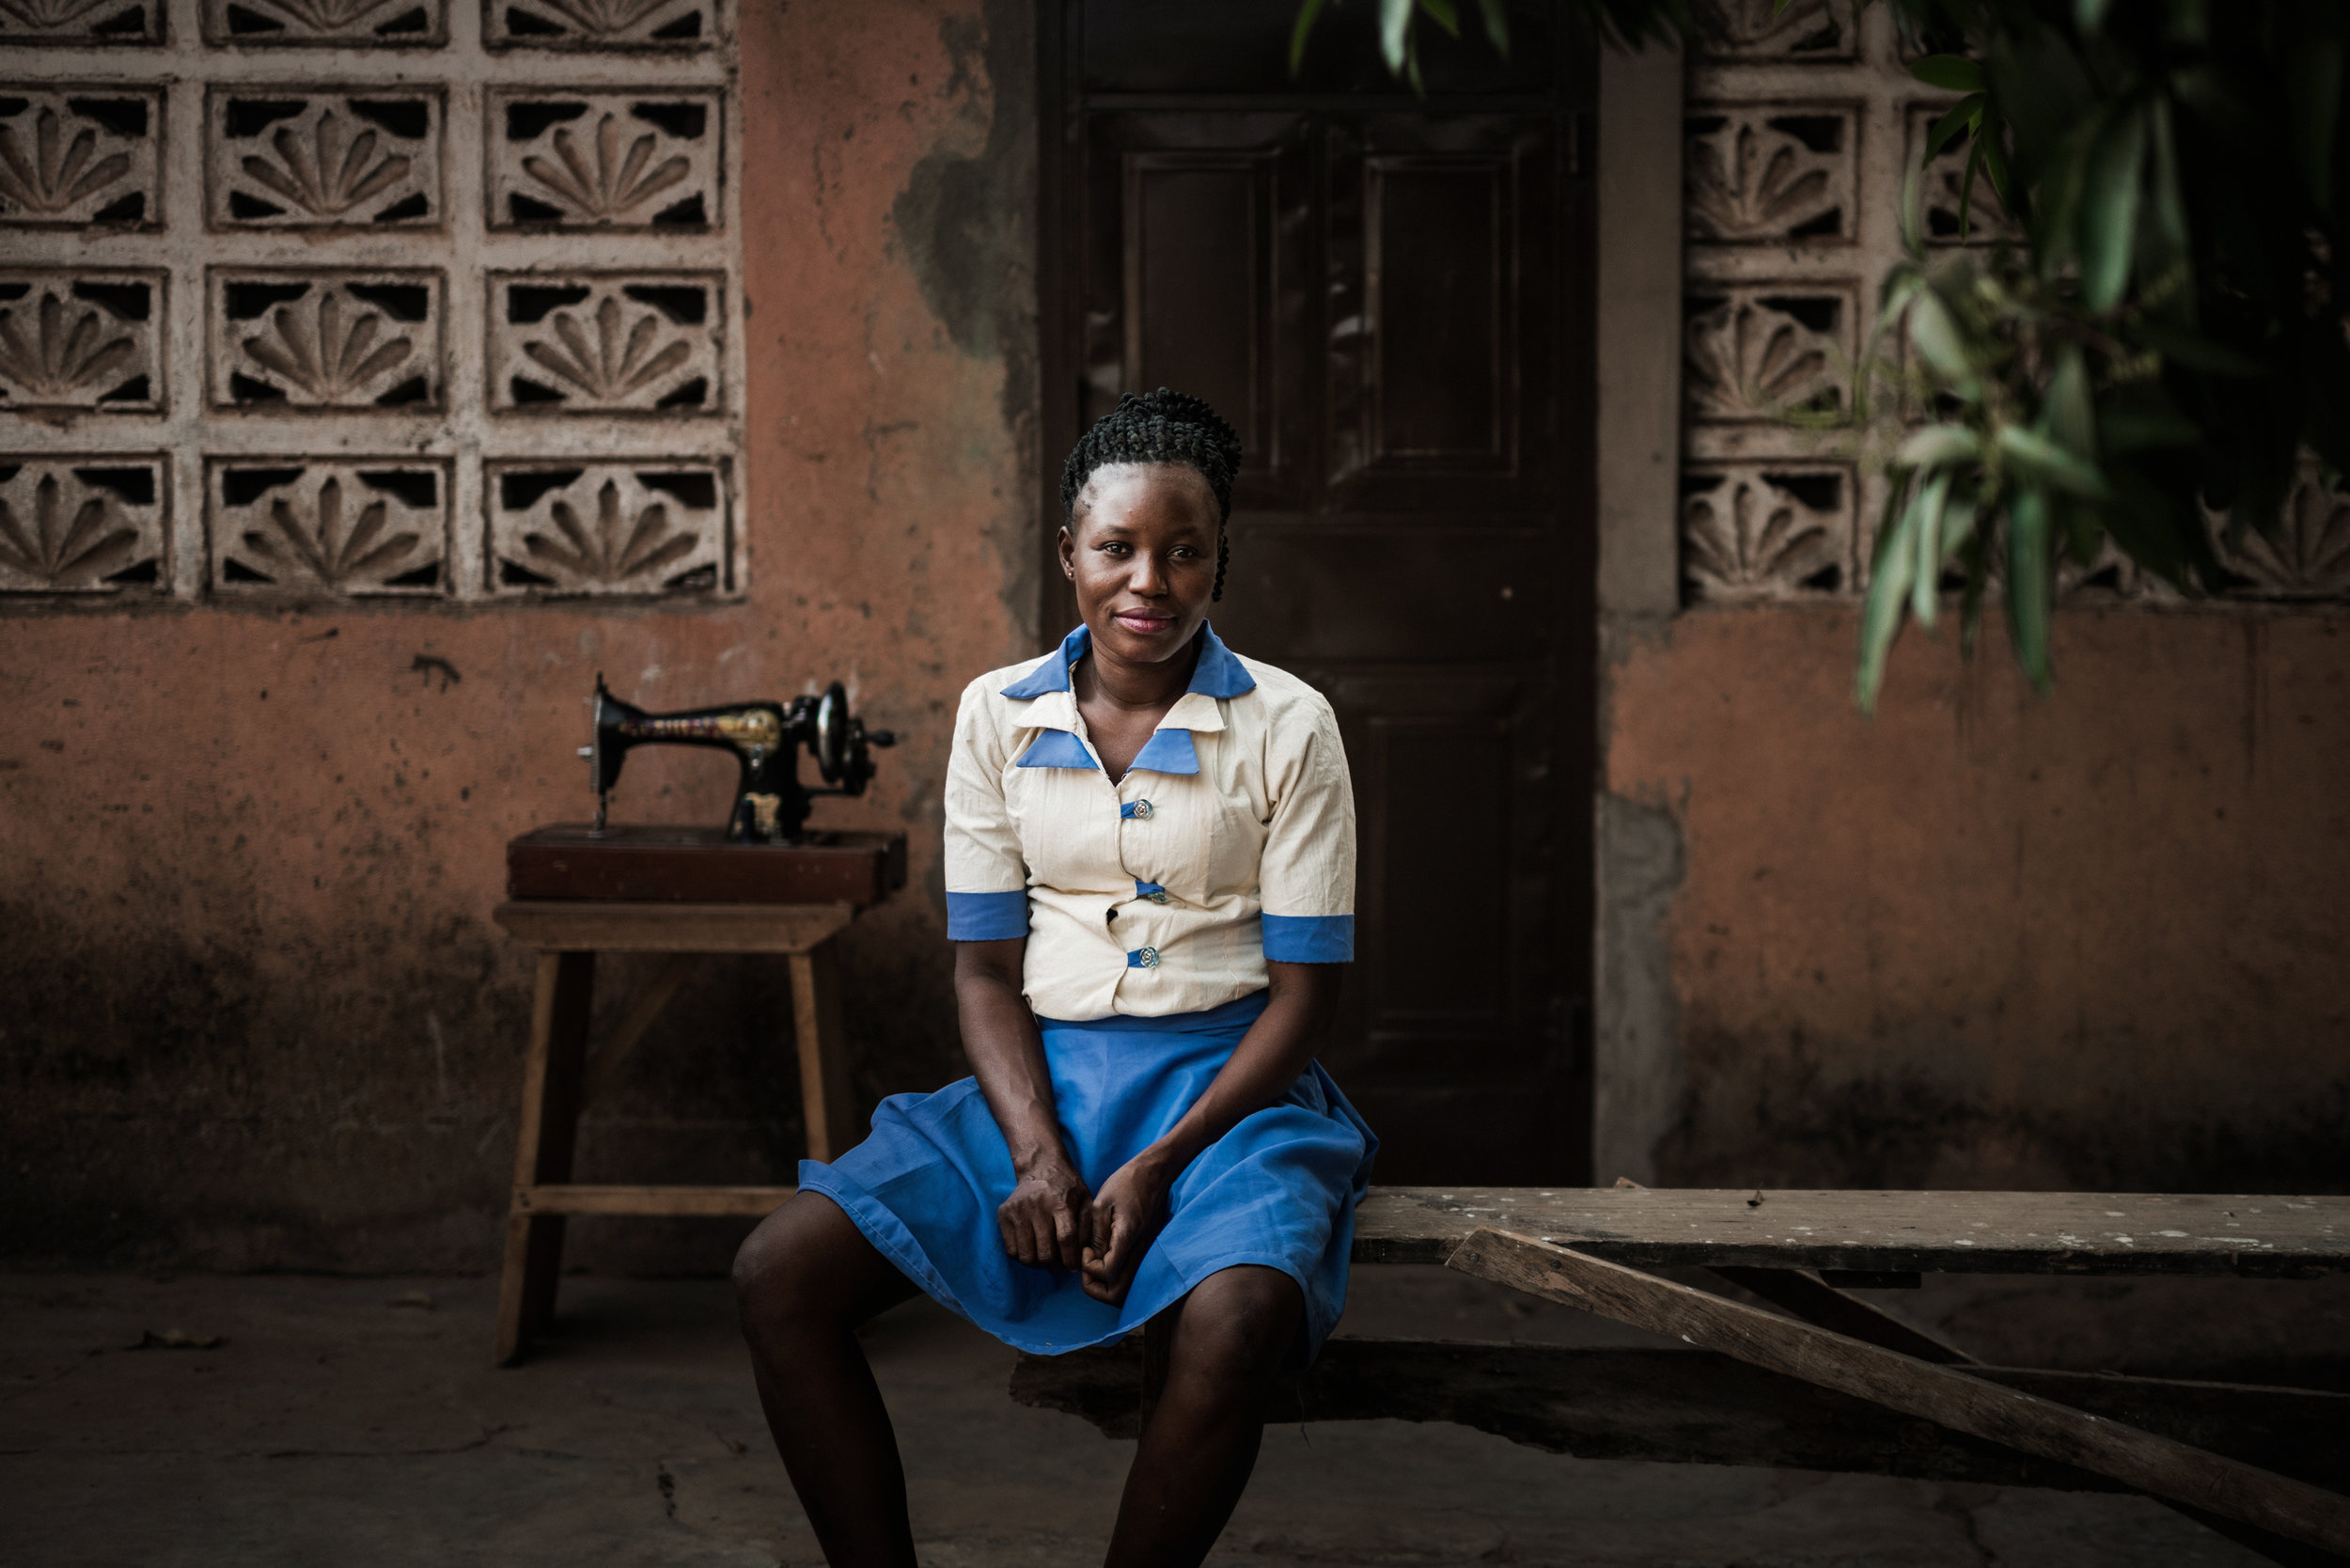 TaraShupe_HumanitarianPhotographer_Woman_Photographer_National_Geographic_Ghana_Women_072.jpg